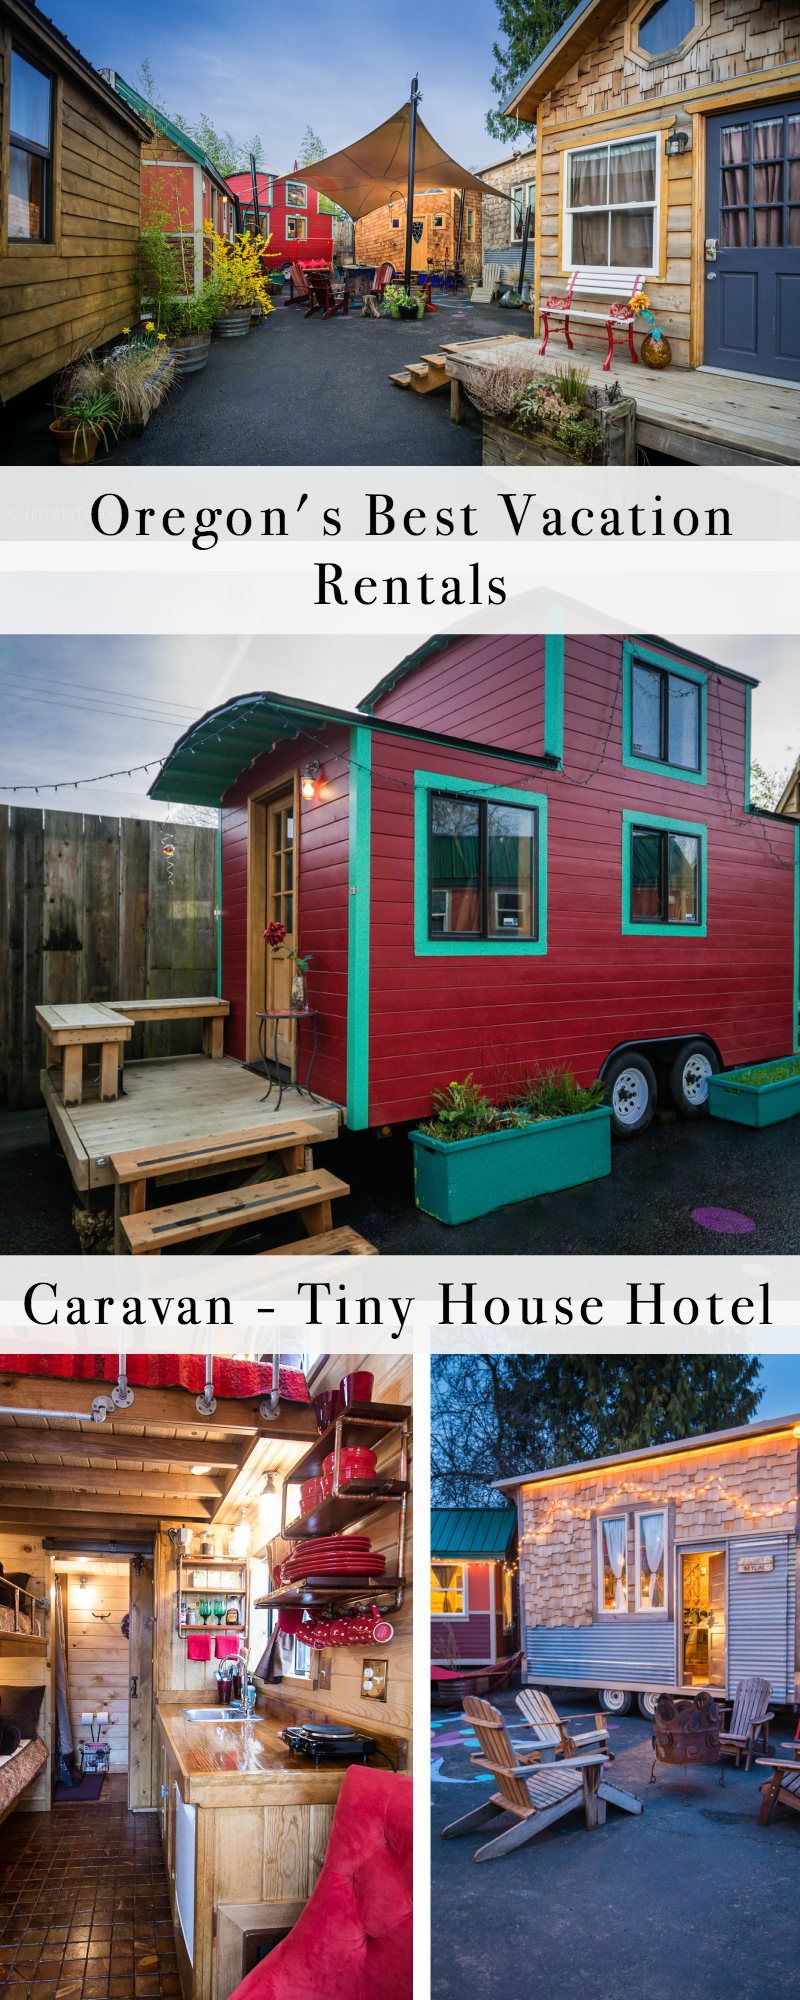 Oregon's Best Vacation Rentals: Caravan Tiny House Hotel 1